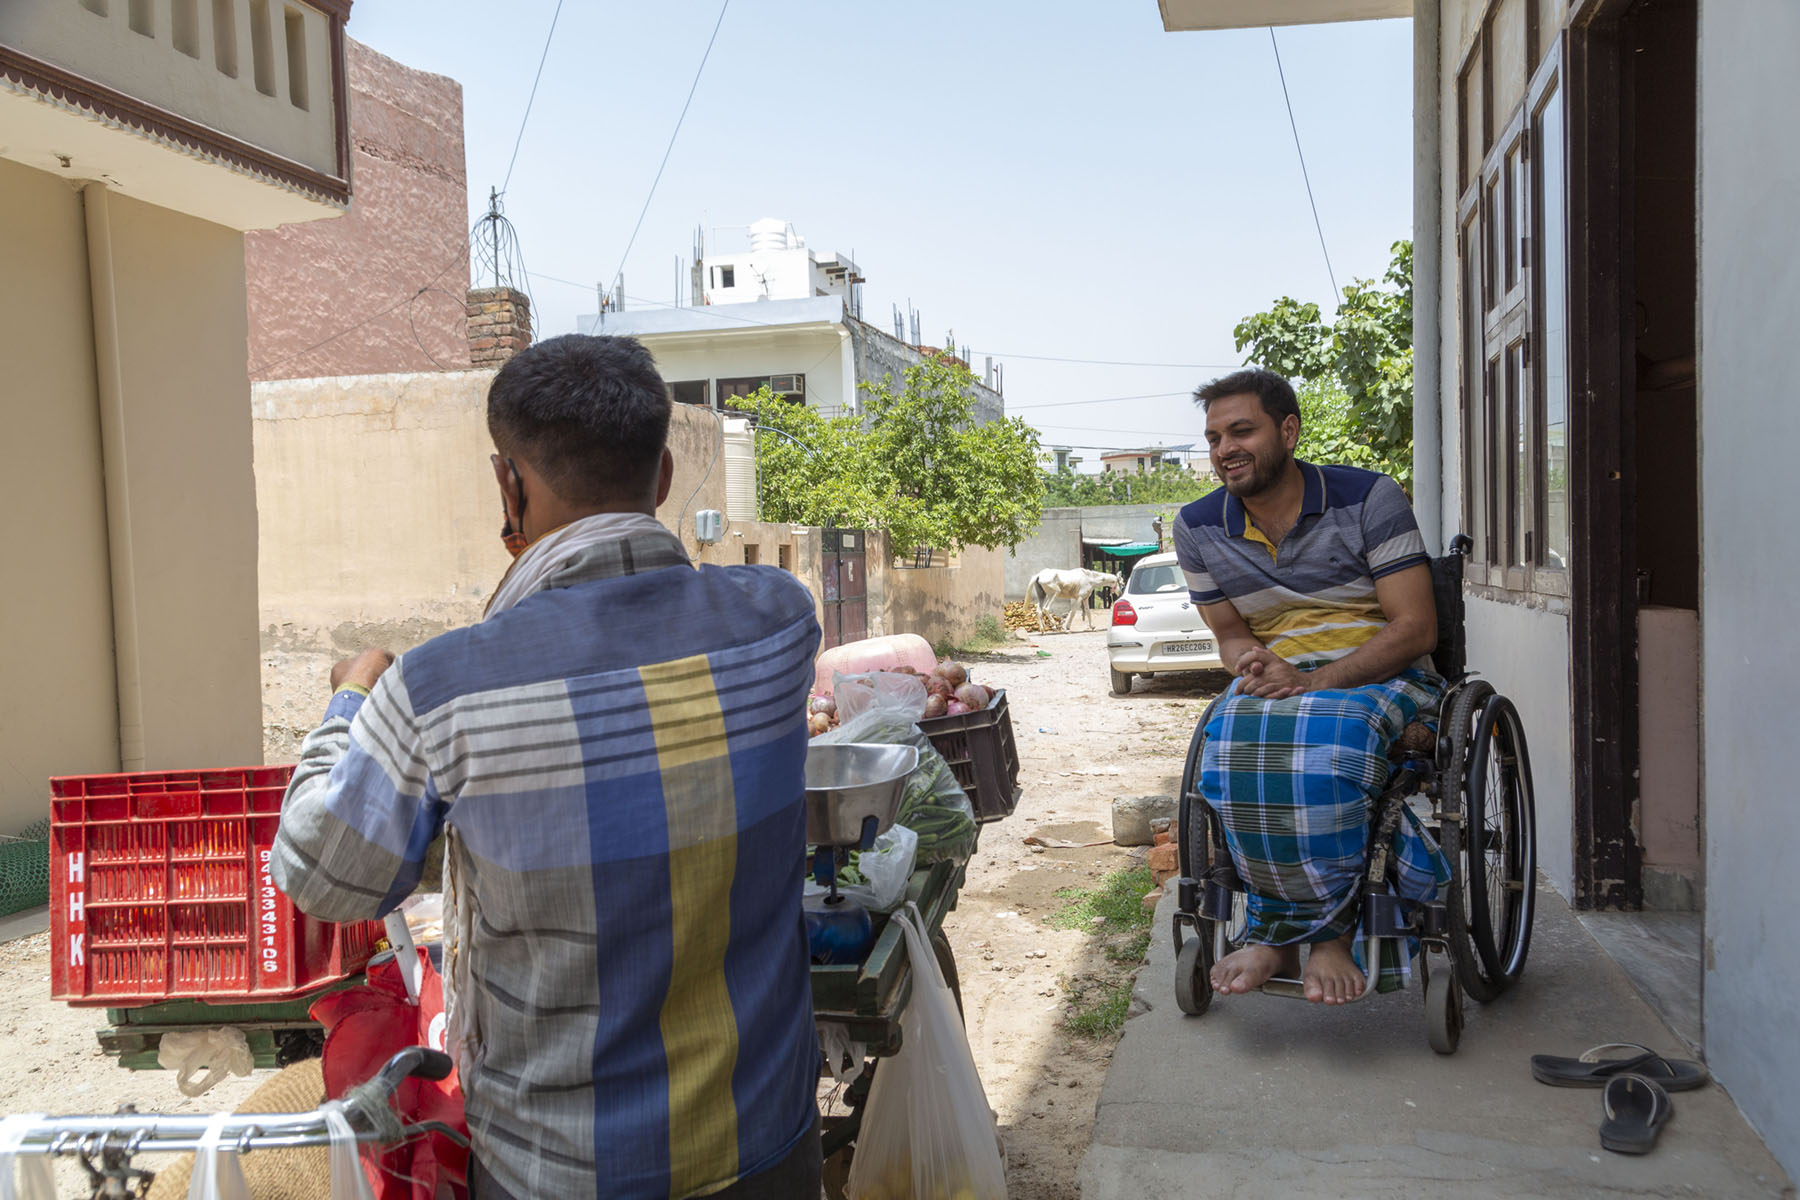 Shams sits in his wheelchair just outside his front door which opens out to a kachcha road. He wears a blue and grey checked lungi and a T-shirt with horizontal stripes in three different shades of grey. A vegetable bicycle cart is parked just outside the door and Shams is smiling and saying something to the vendor. The vendor has his back to us and he wears a full-sleeve cotton shirt with an indigo-blue and mustard-yellow design.